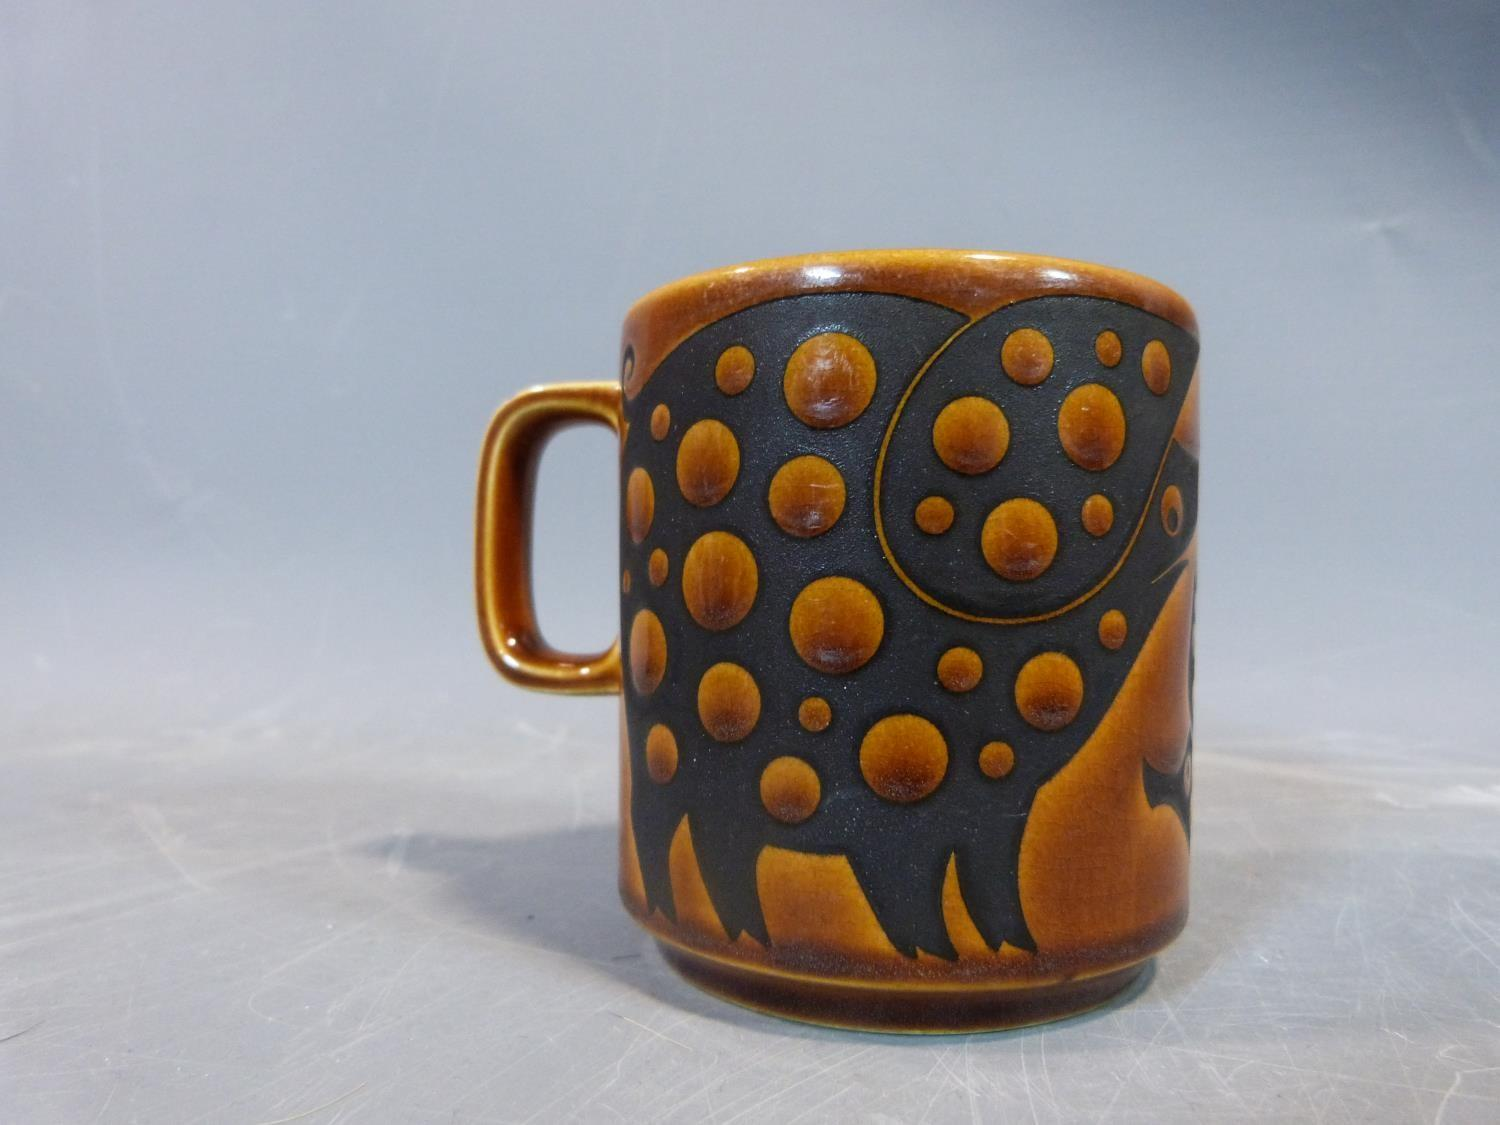 A collection of 1970's Hornsea mugs designed by John Clappison, a studio pottery vase and three - Image 7 of 22